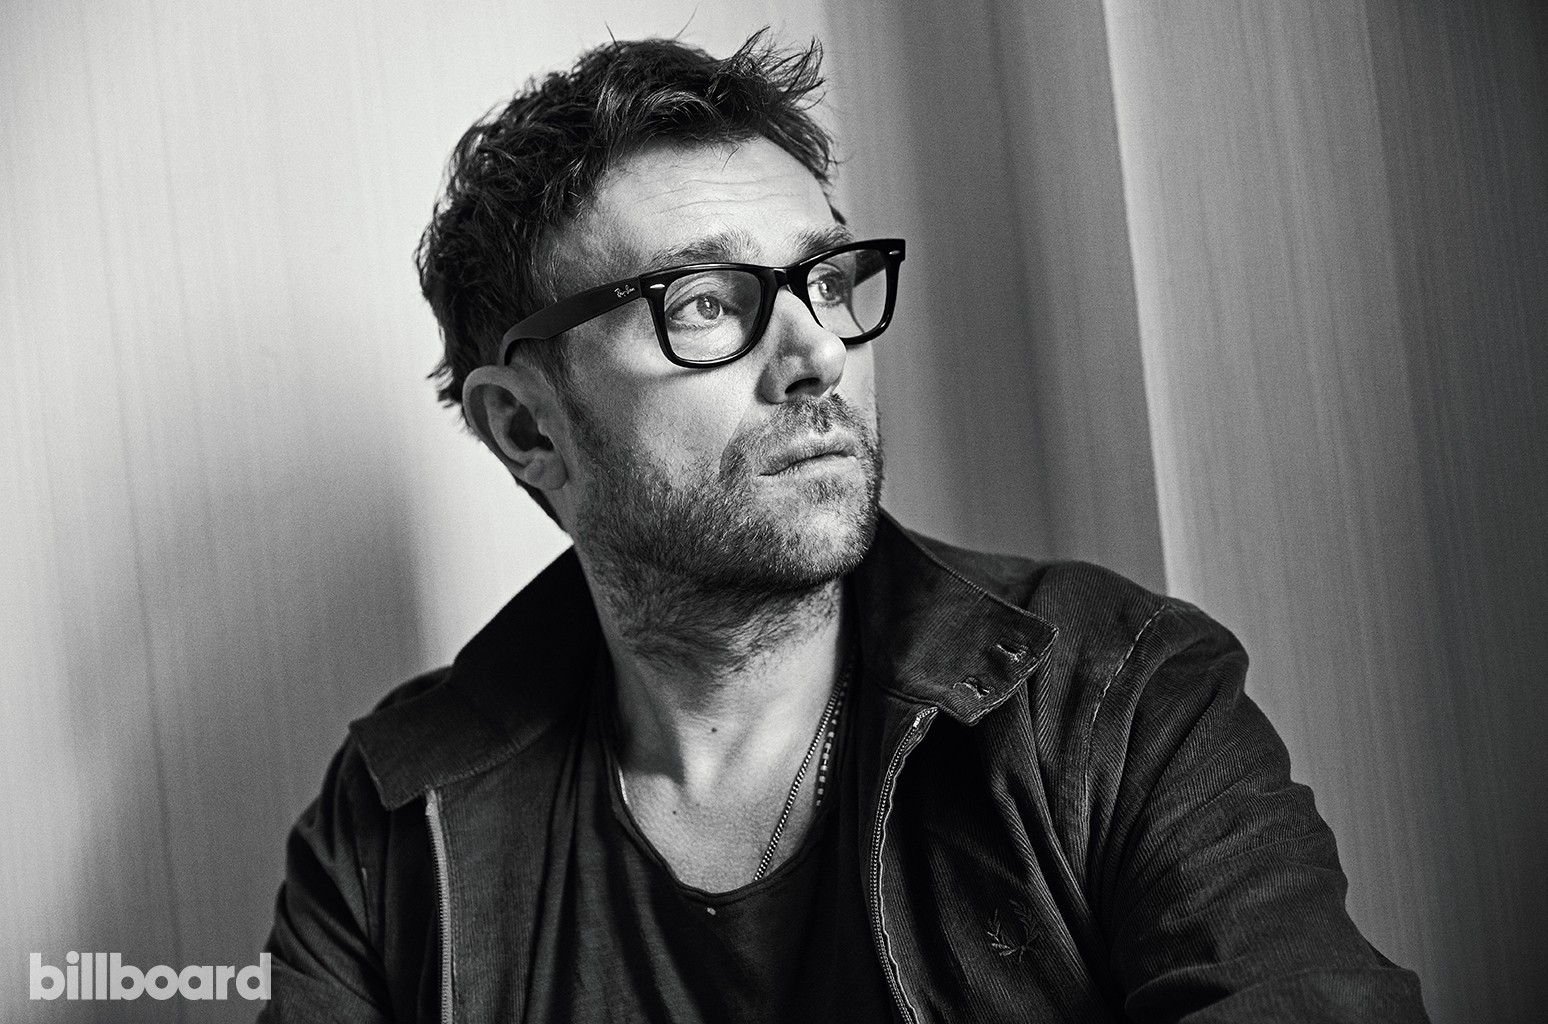 Damon Albarn photographed on March27, 2017 at The Greenwich Hotel in New York.